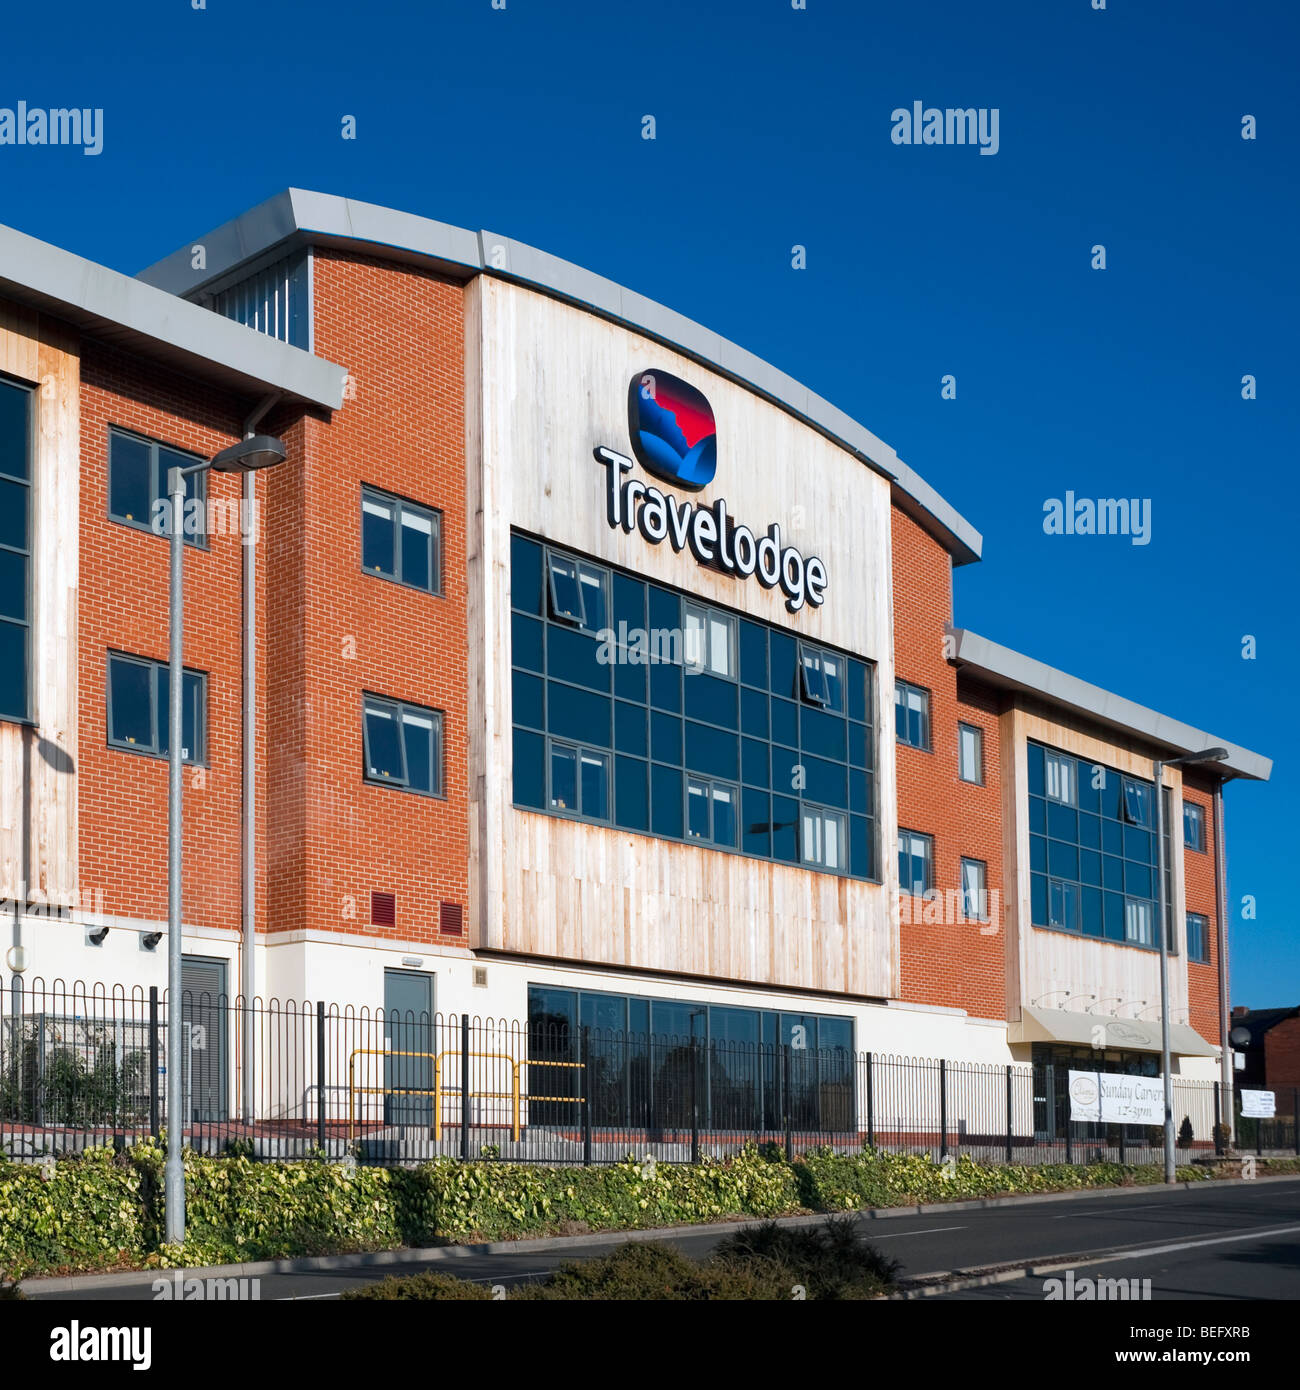 Travelodge Motel in the UK. City of Hereford's Travelodge. - Stock Image